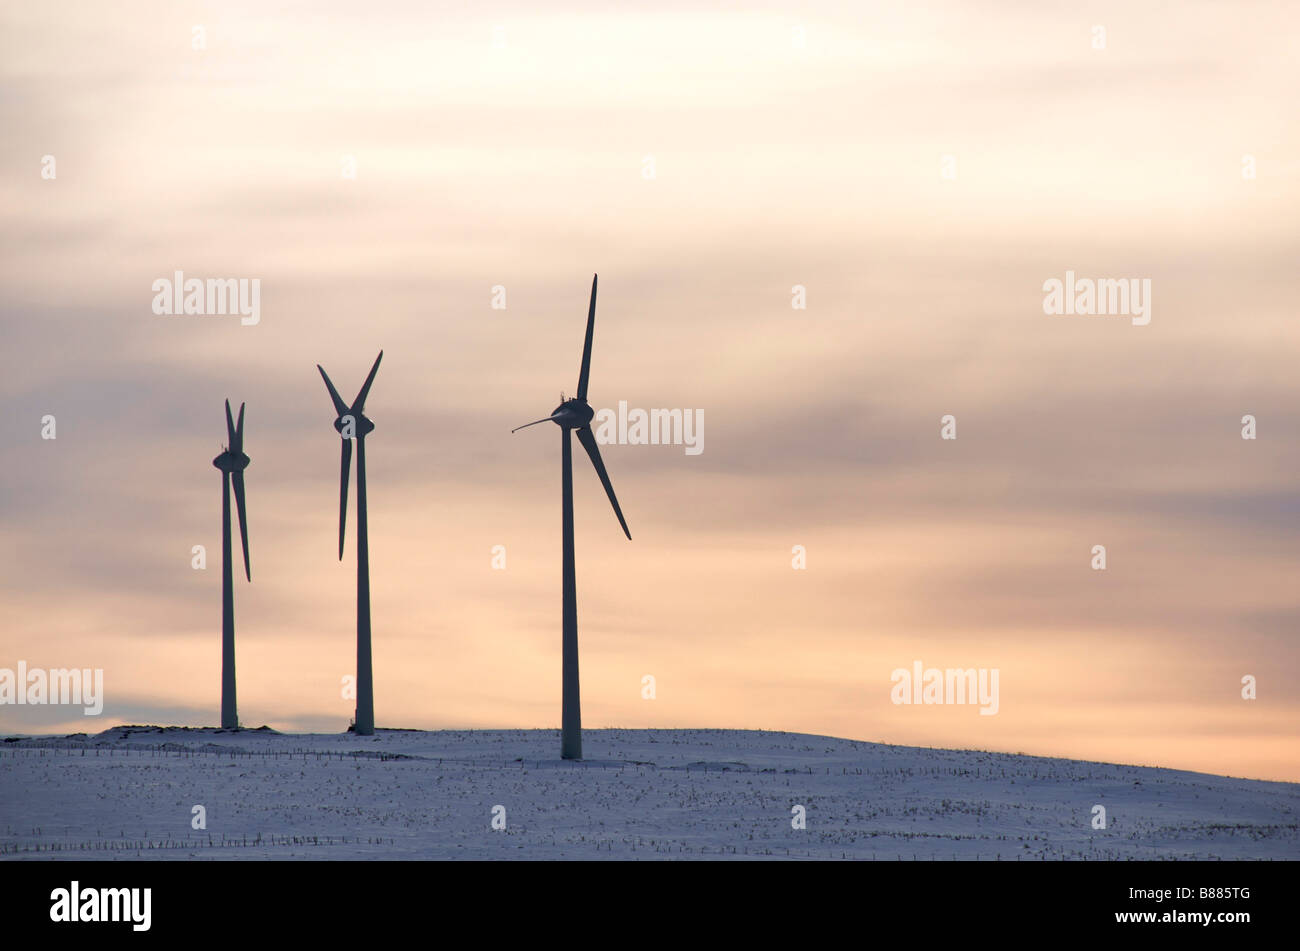 Wind turbines on a hill at sunset - renewable energy - Stock Image